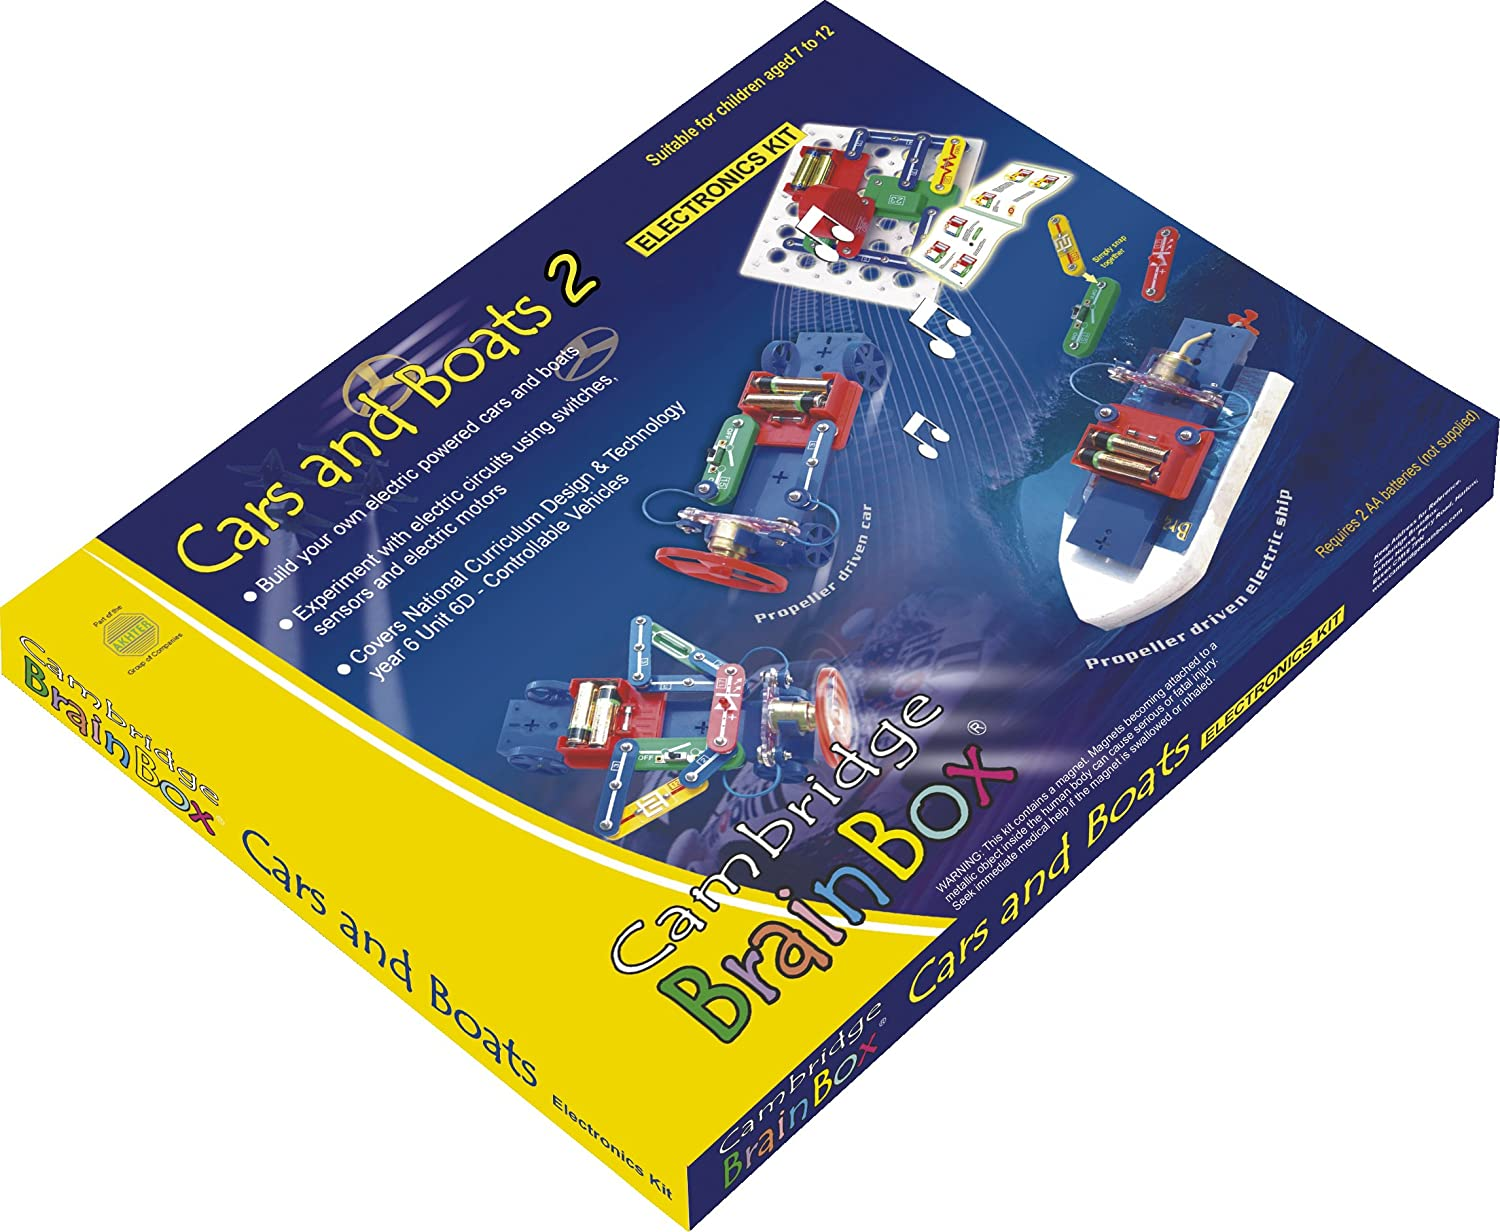 'Cars & Boats' Electronics and Science Construction Kit Cambridge Brainbox ELKT90000 Architecture